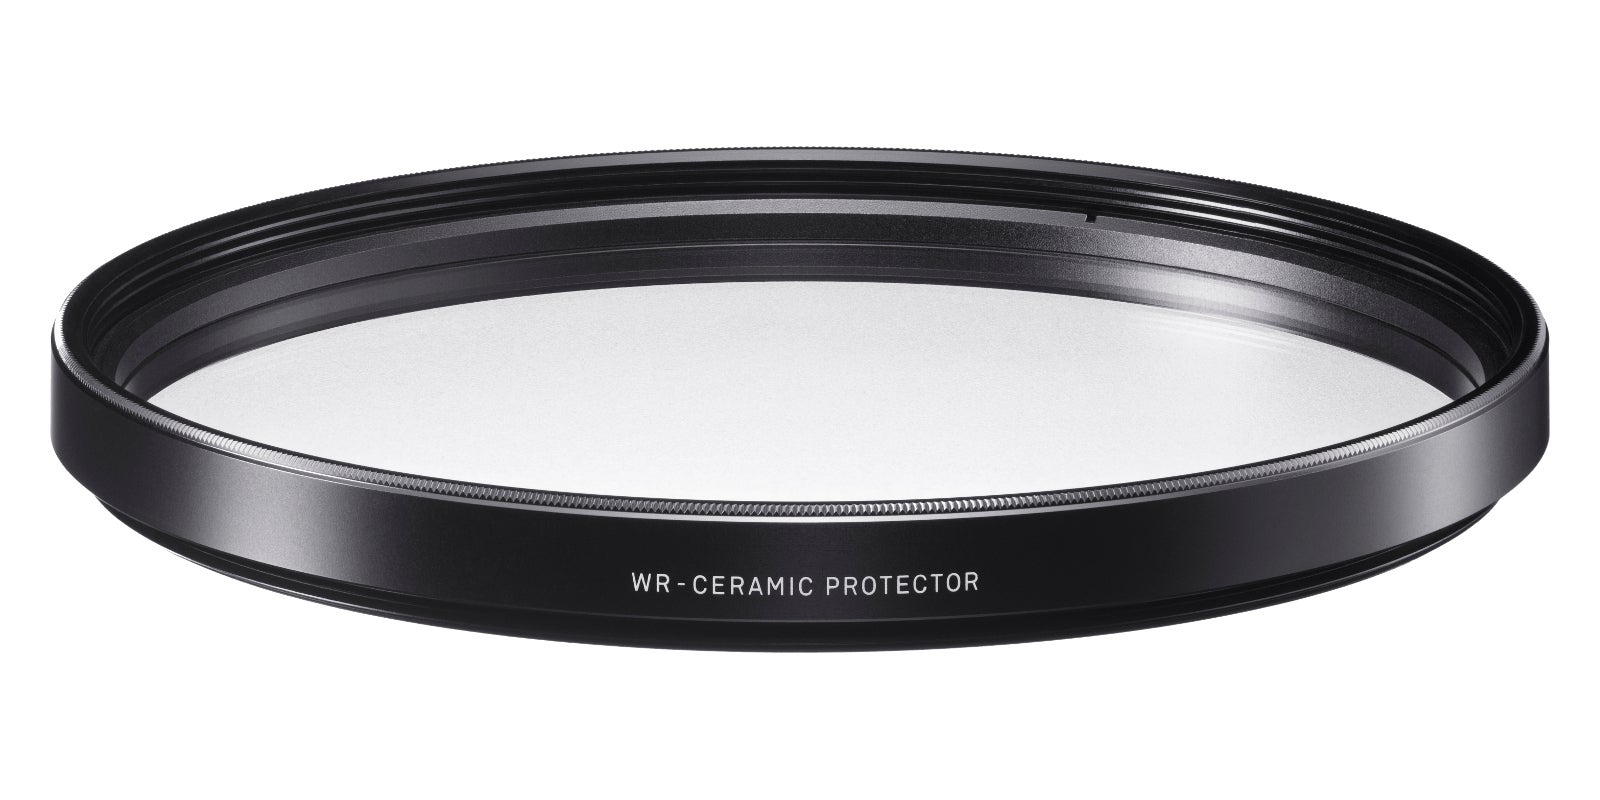 Clear Ceramic Makes This Filter 10x Tougher Than Your Usual Lens Protector